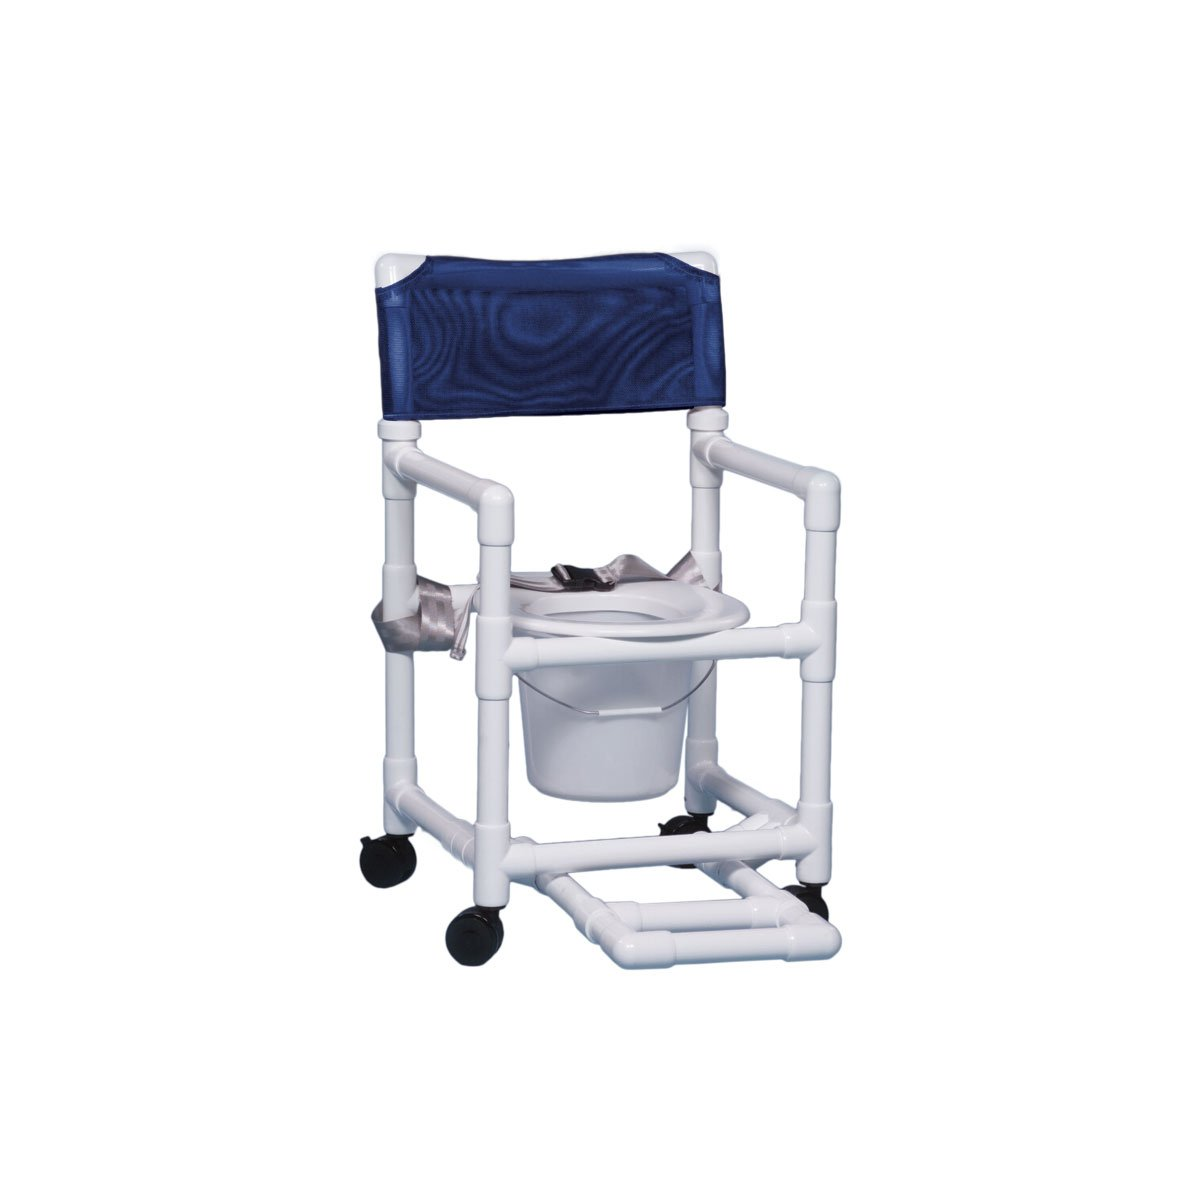 Shower Chair Commode with Footrest & Seat Belt 17'' Clearance- Dark Blue